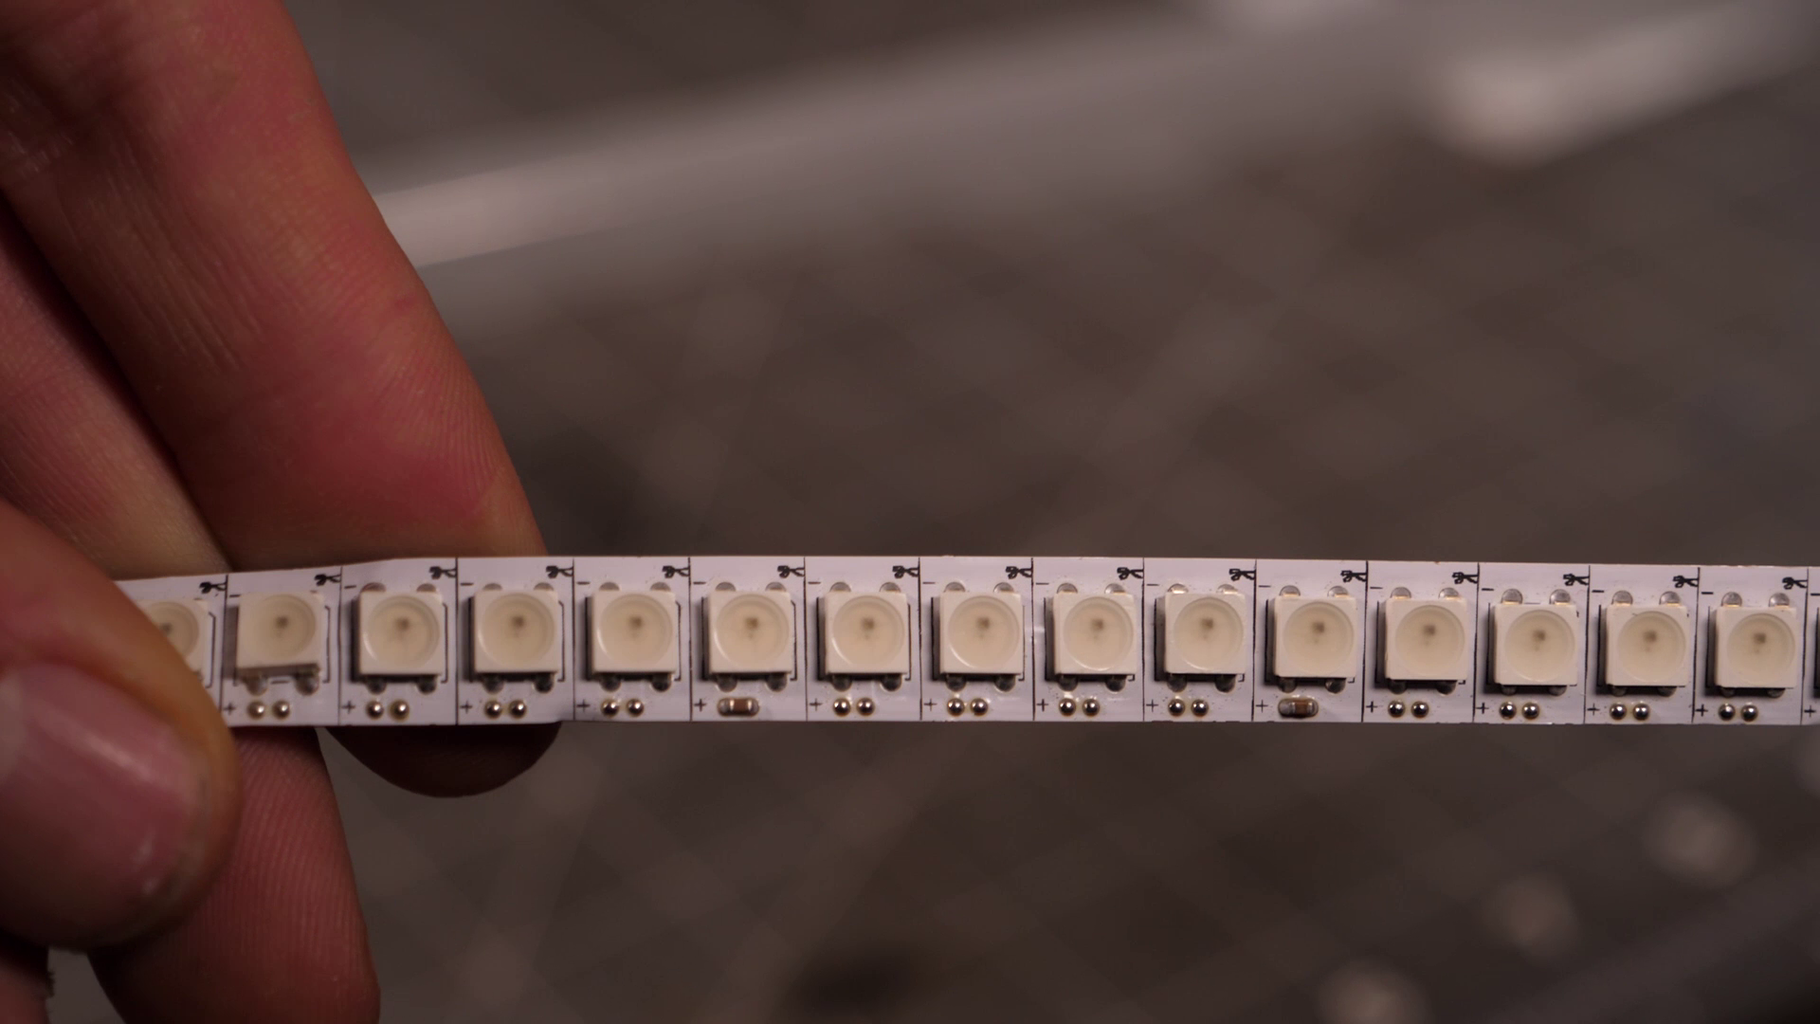 Adding the LED-strips